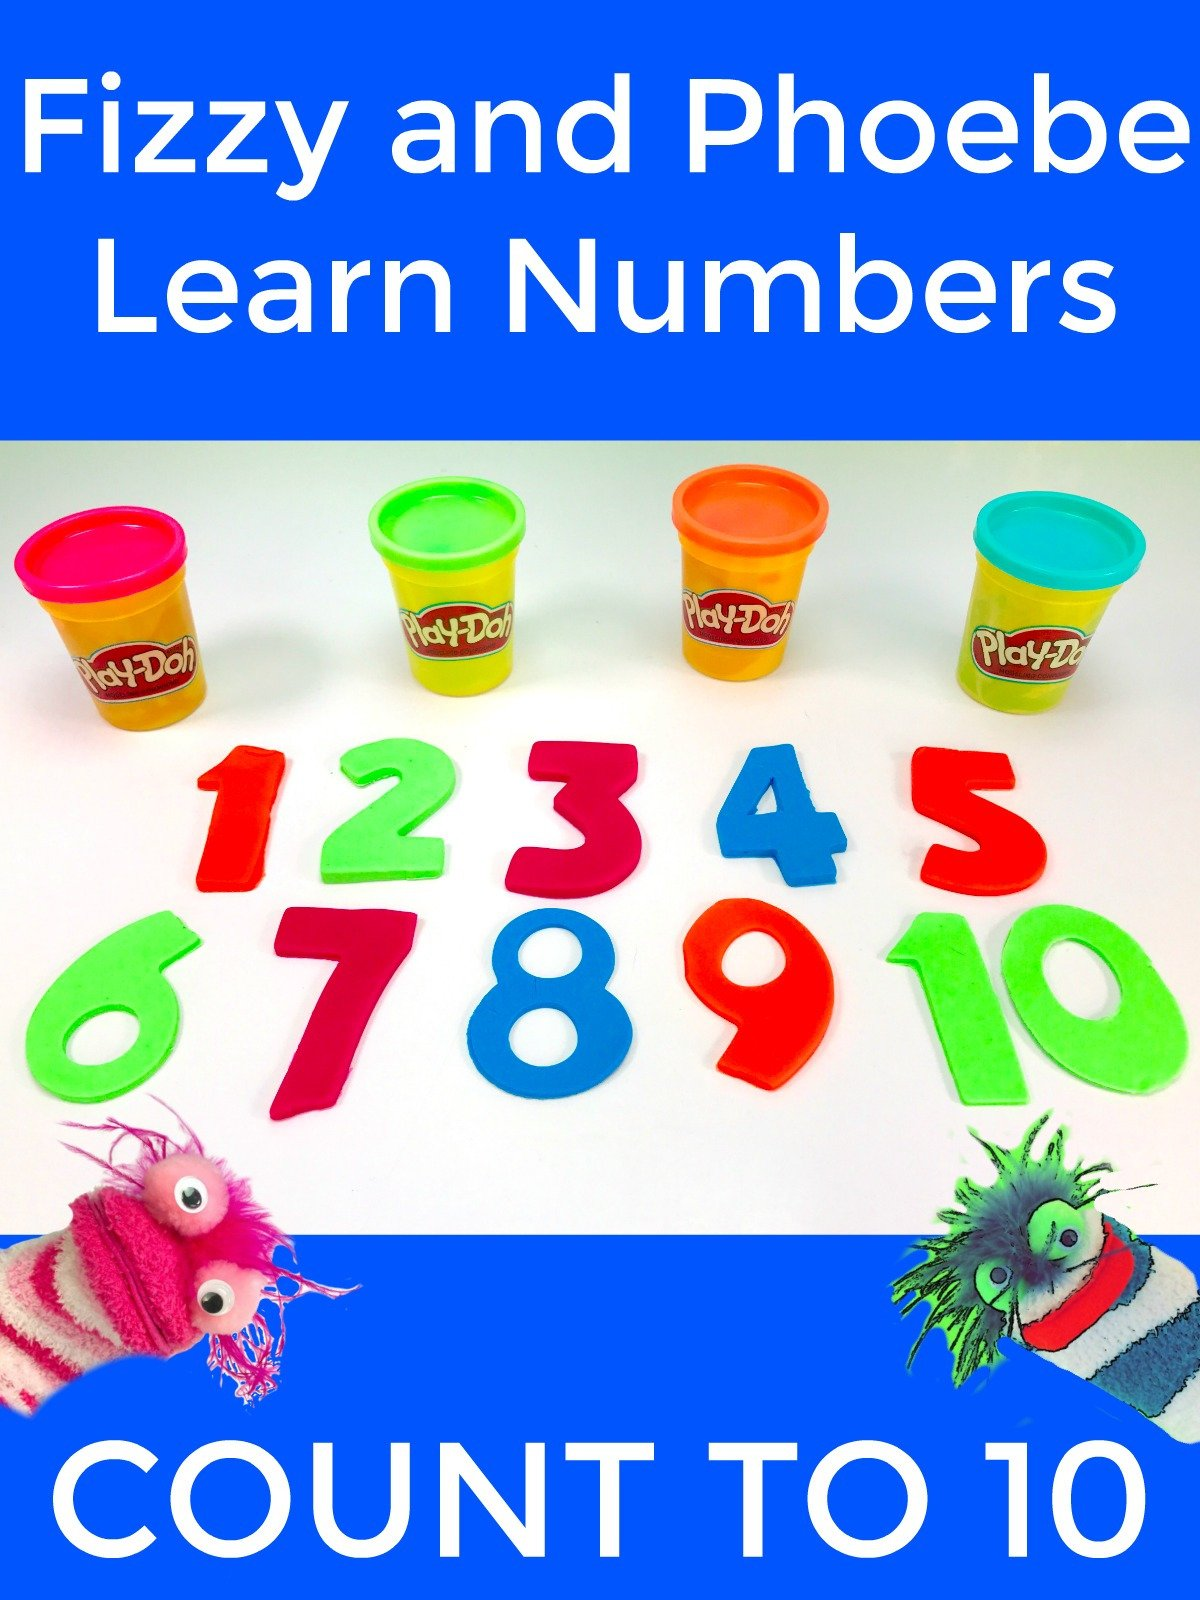 Fizzy and Phoebe Learn Numbers Counting to Ten on Amazon Prime Instant Video UK